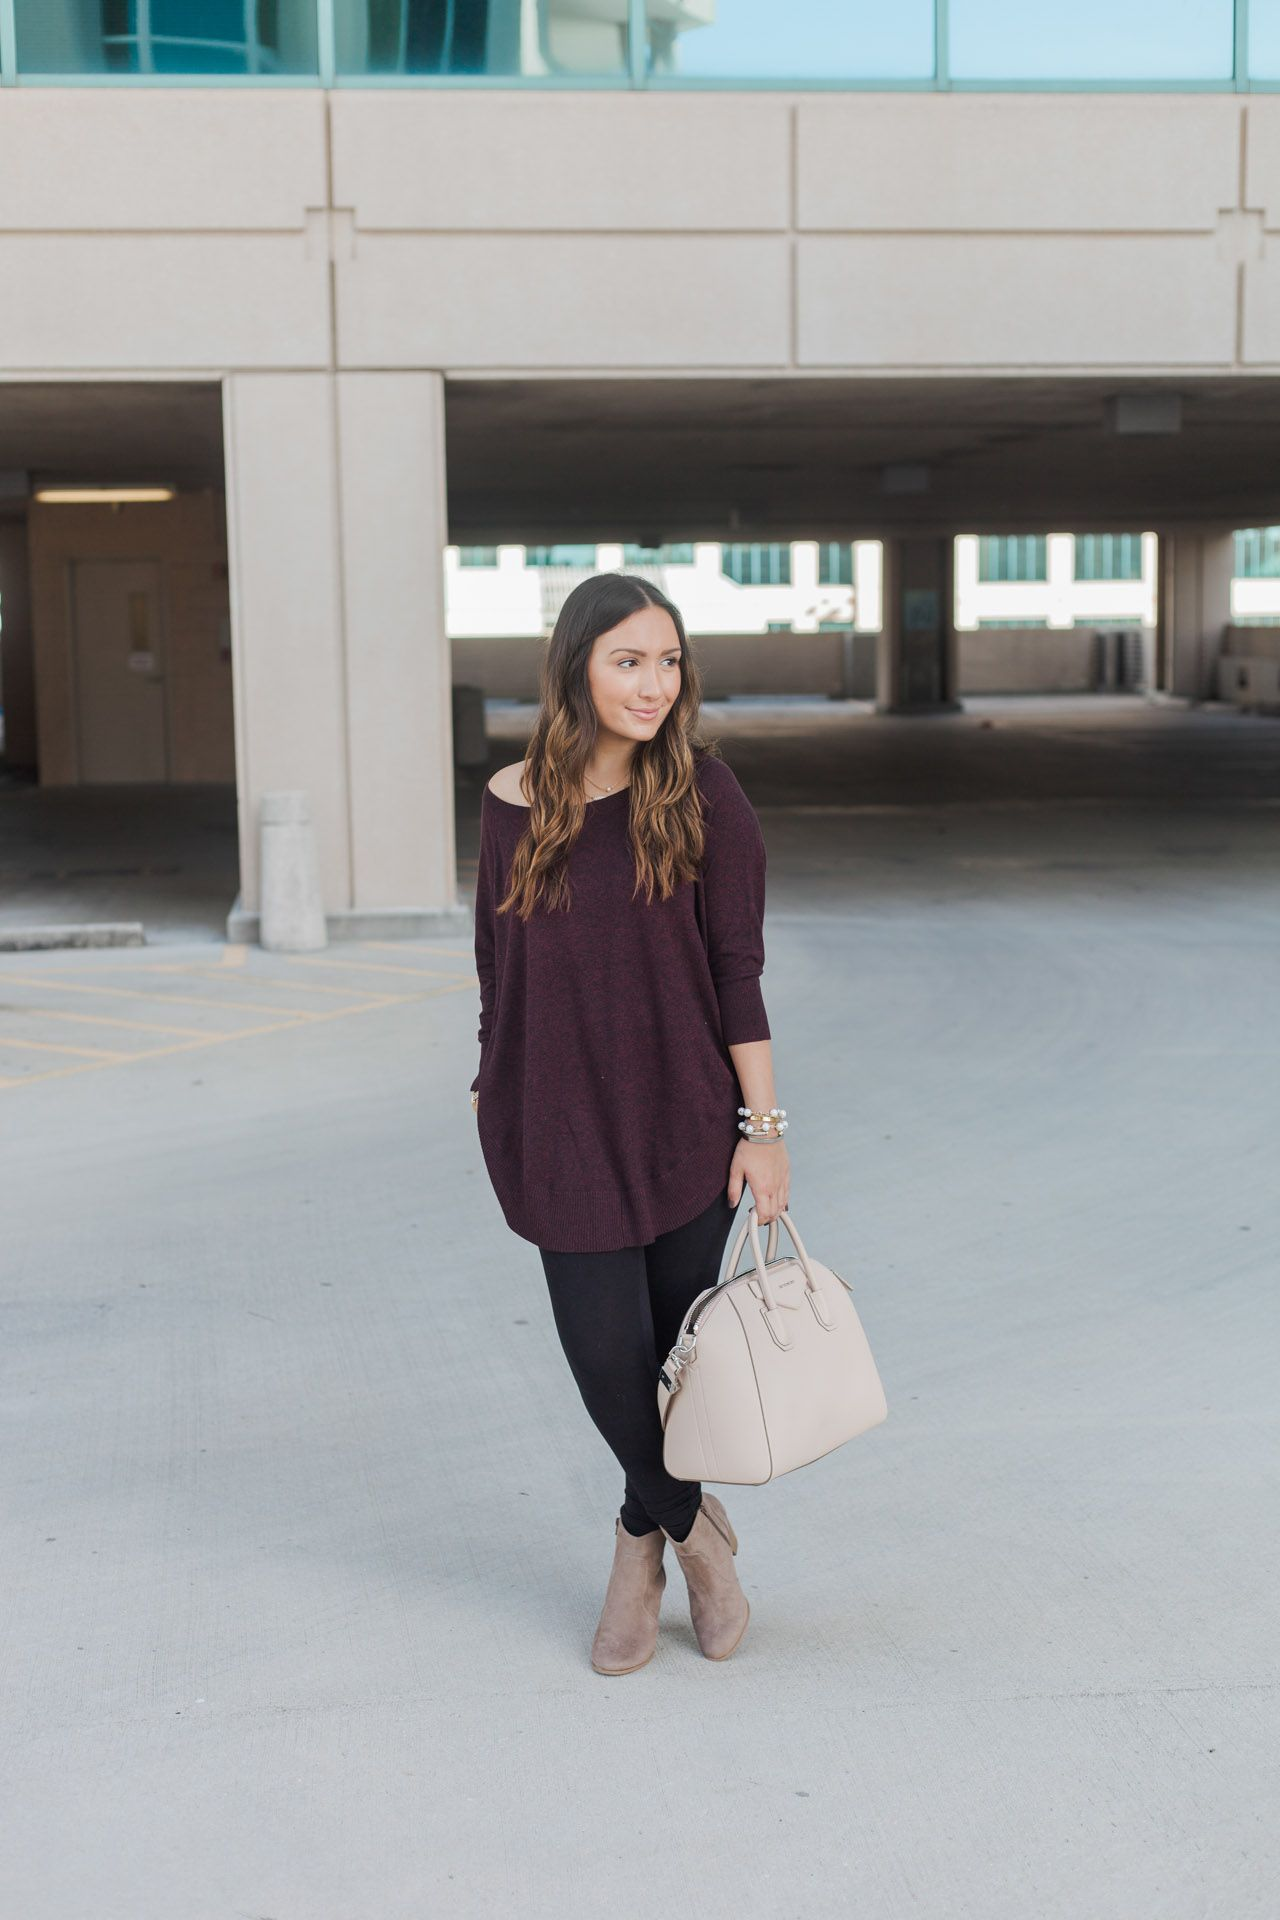 Burgundy Sweater | Burgundy sweater, Fashion bloggers and Fall winter